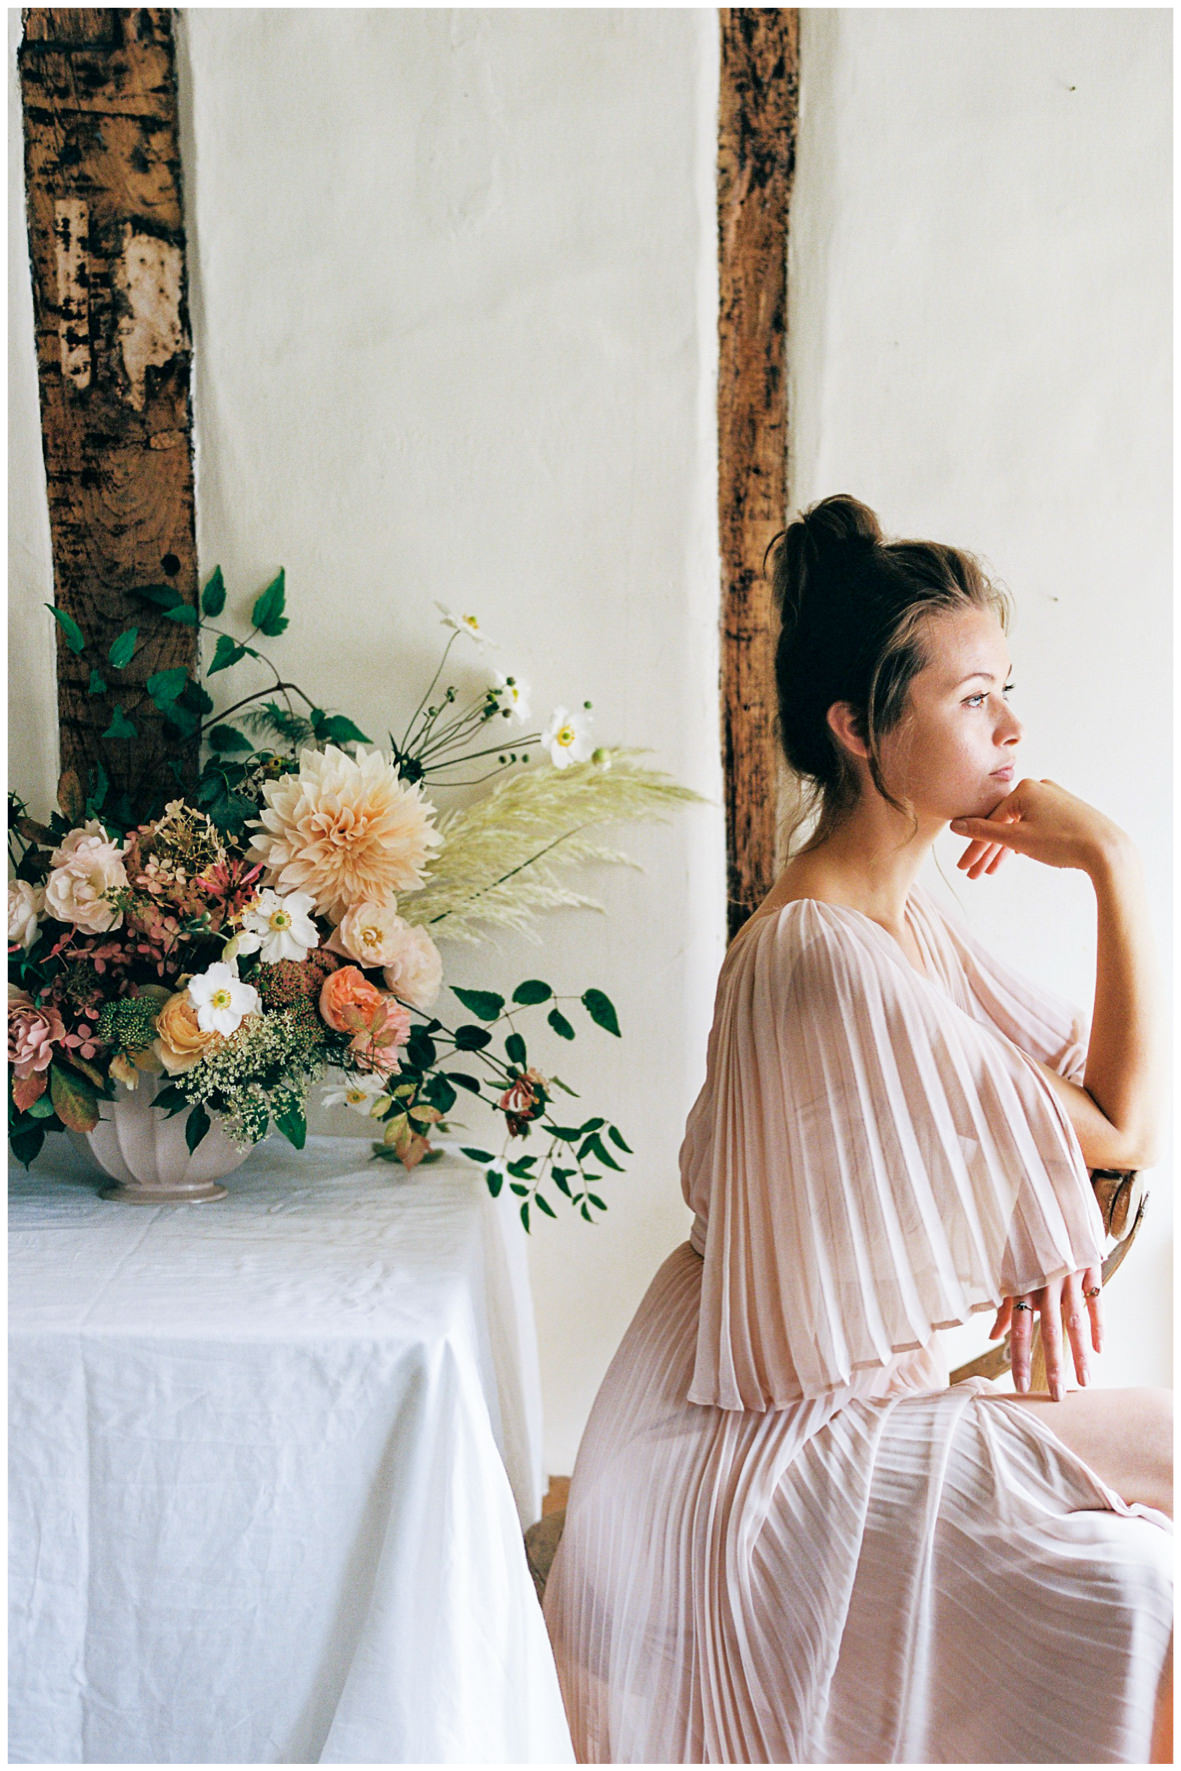 Lucy Davenport Photography, Once Wed, Home Creations, The Wedding Stylist, Verity & Thyme, tablescape, intimate dinner, wedding breakfast, florals, bouquet, model, coloured wedding dress